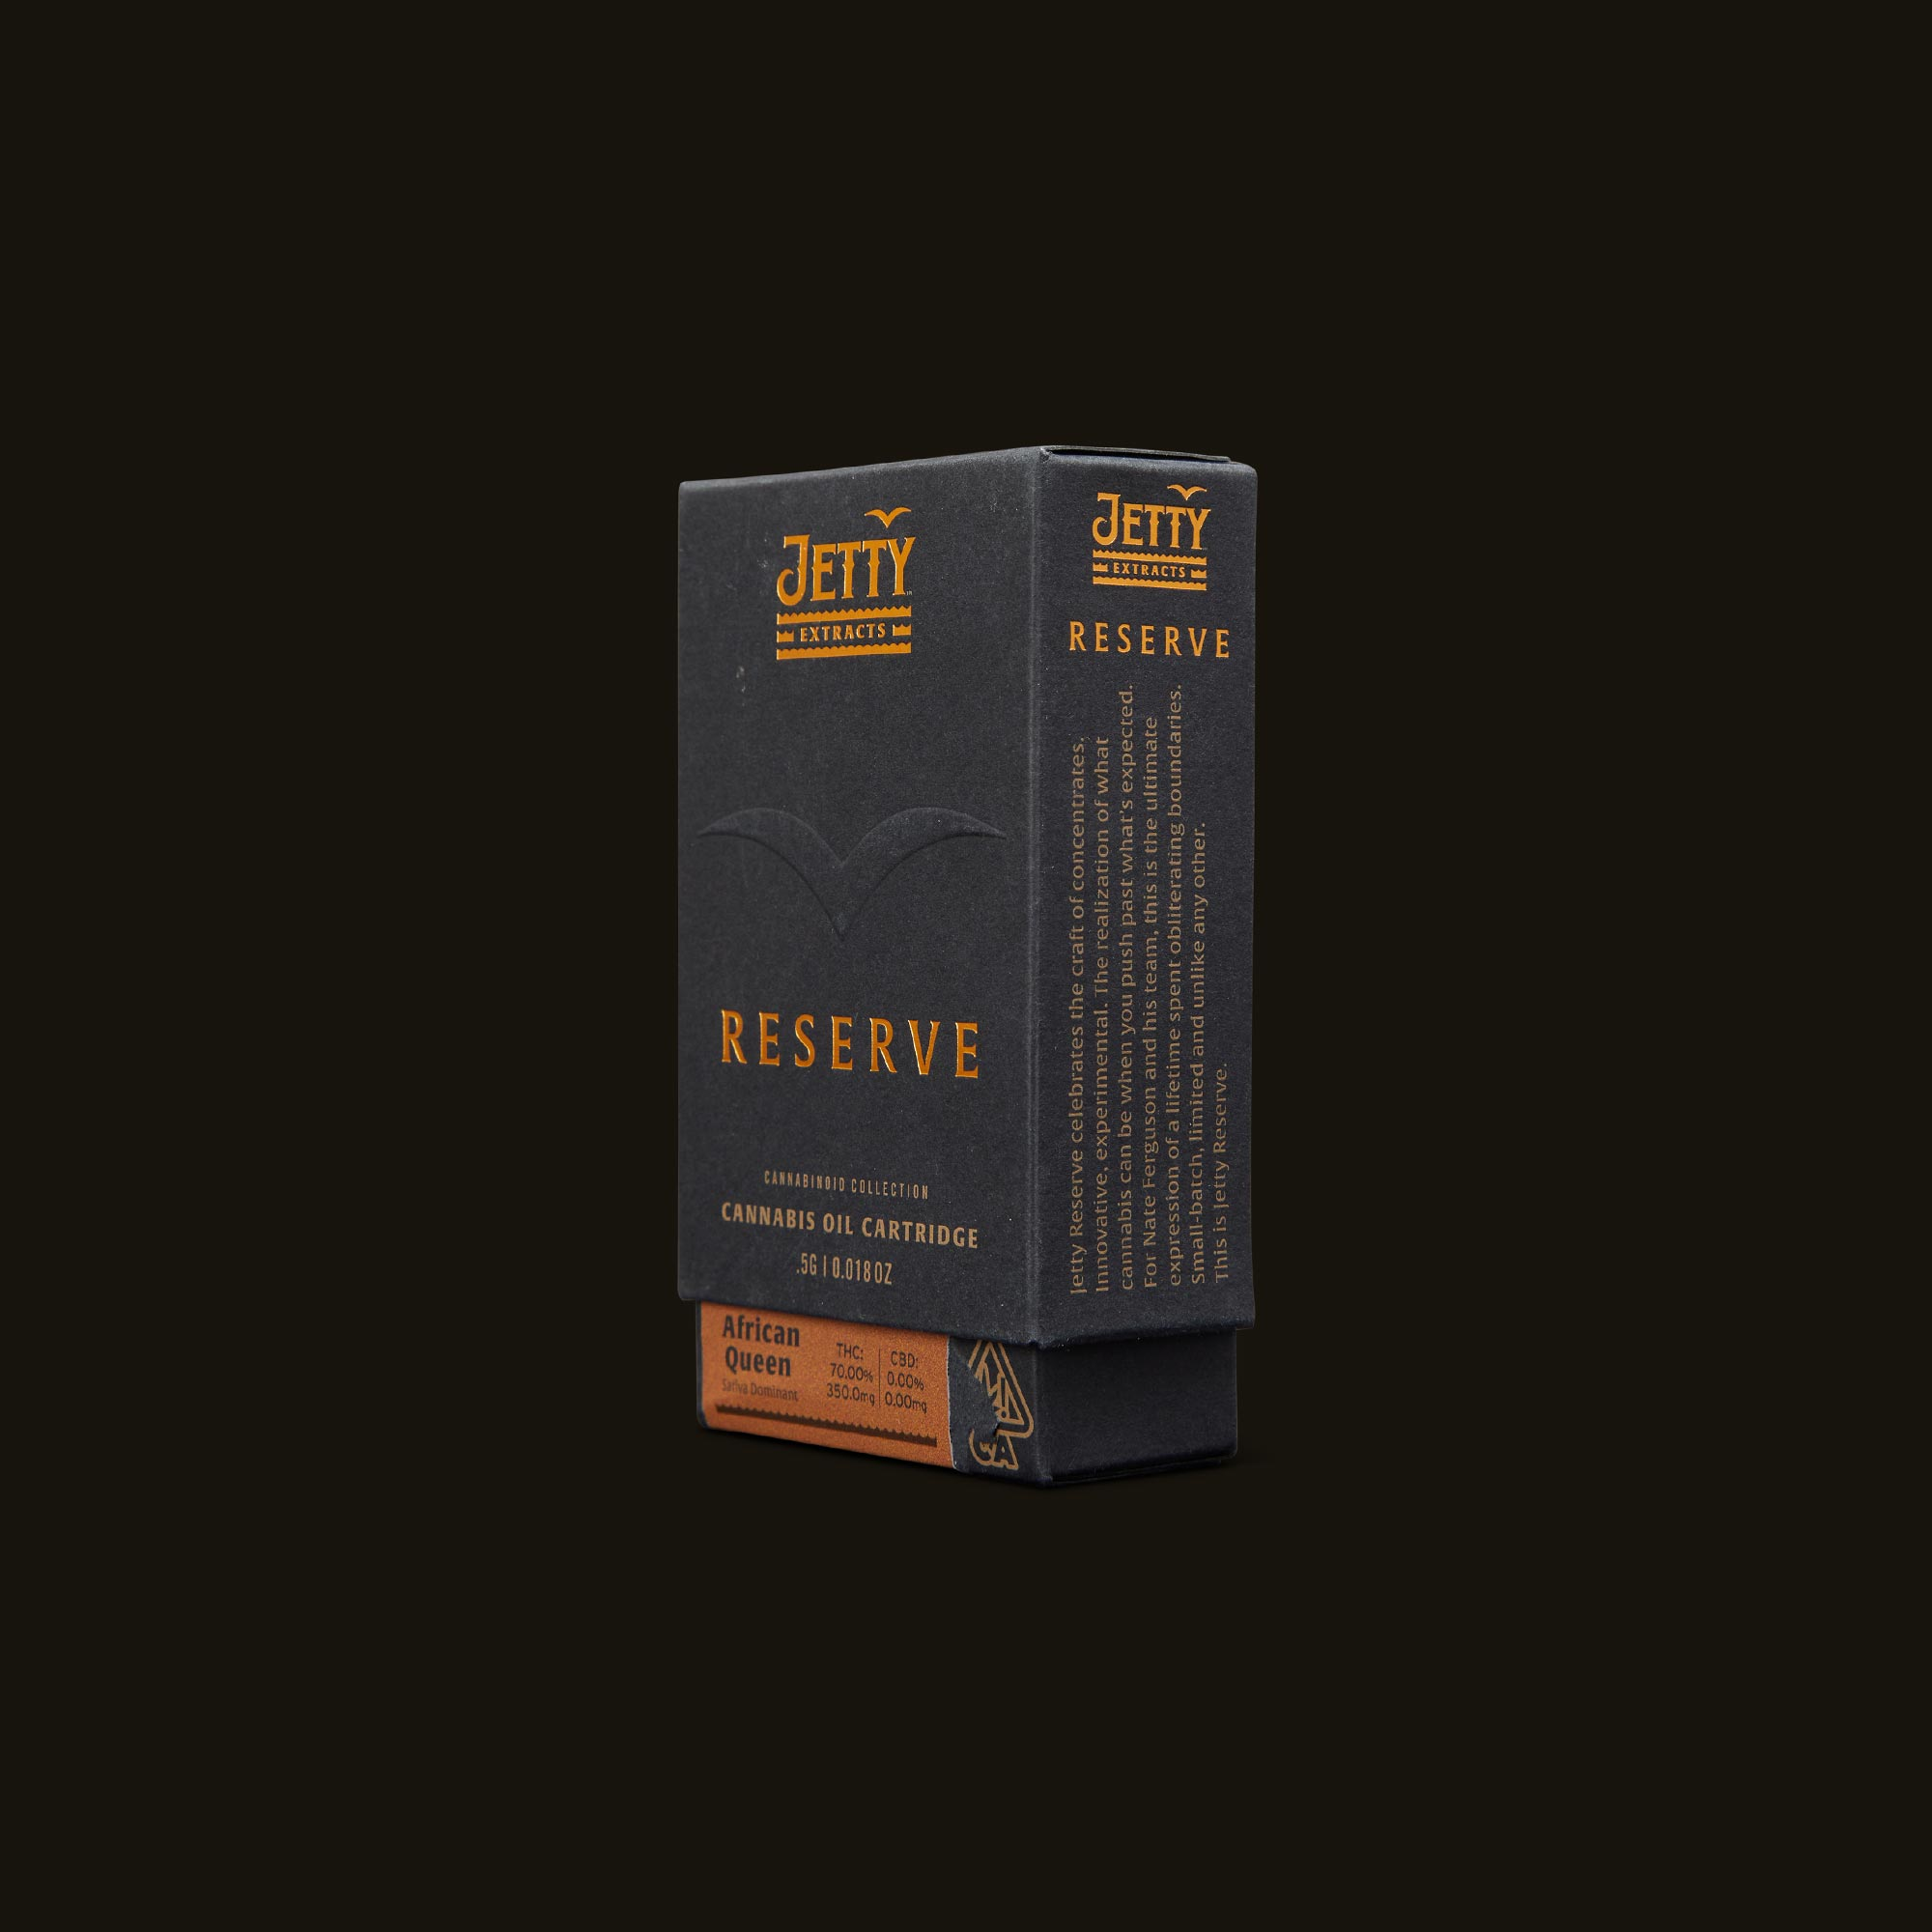 Jetty Extracts Reserve Vape Cartridge - African Queen Side Packaging